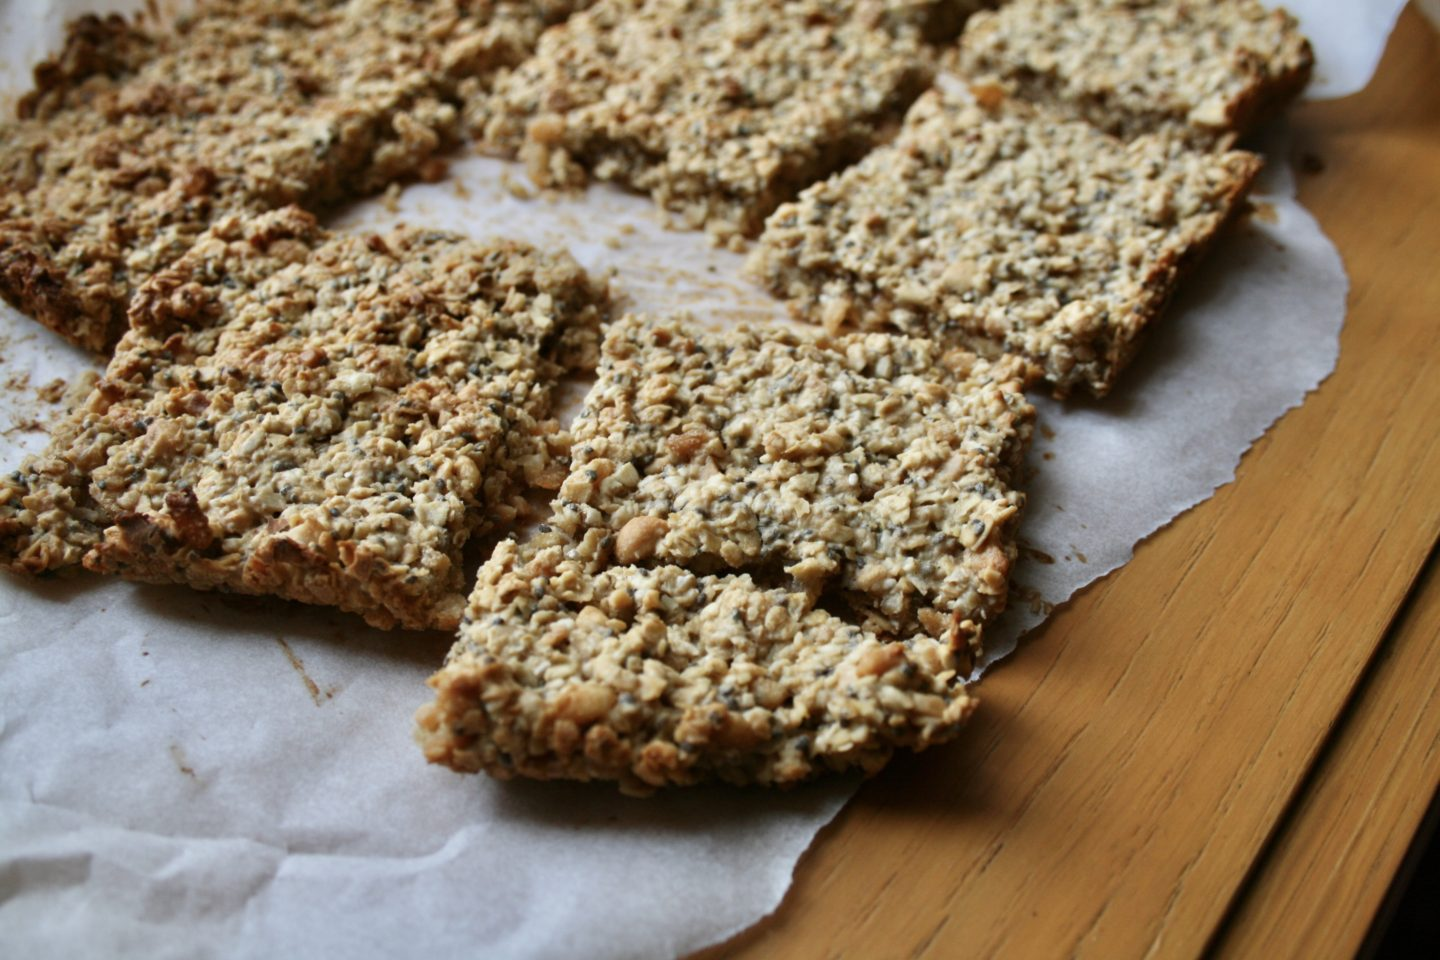 PEANUT BUTTER, OATMEAL AND RICE KRISPIES BAR | MAKE-AHEAD SNACK